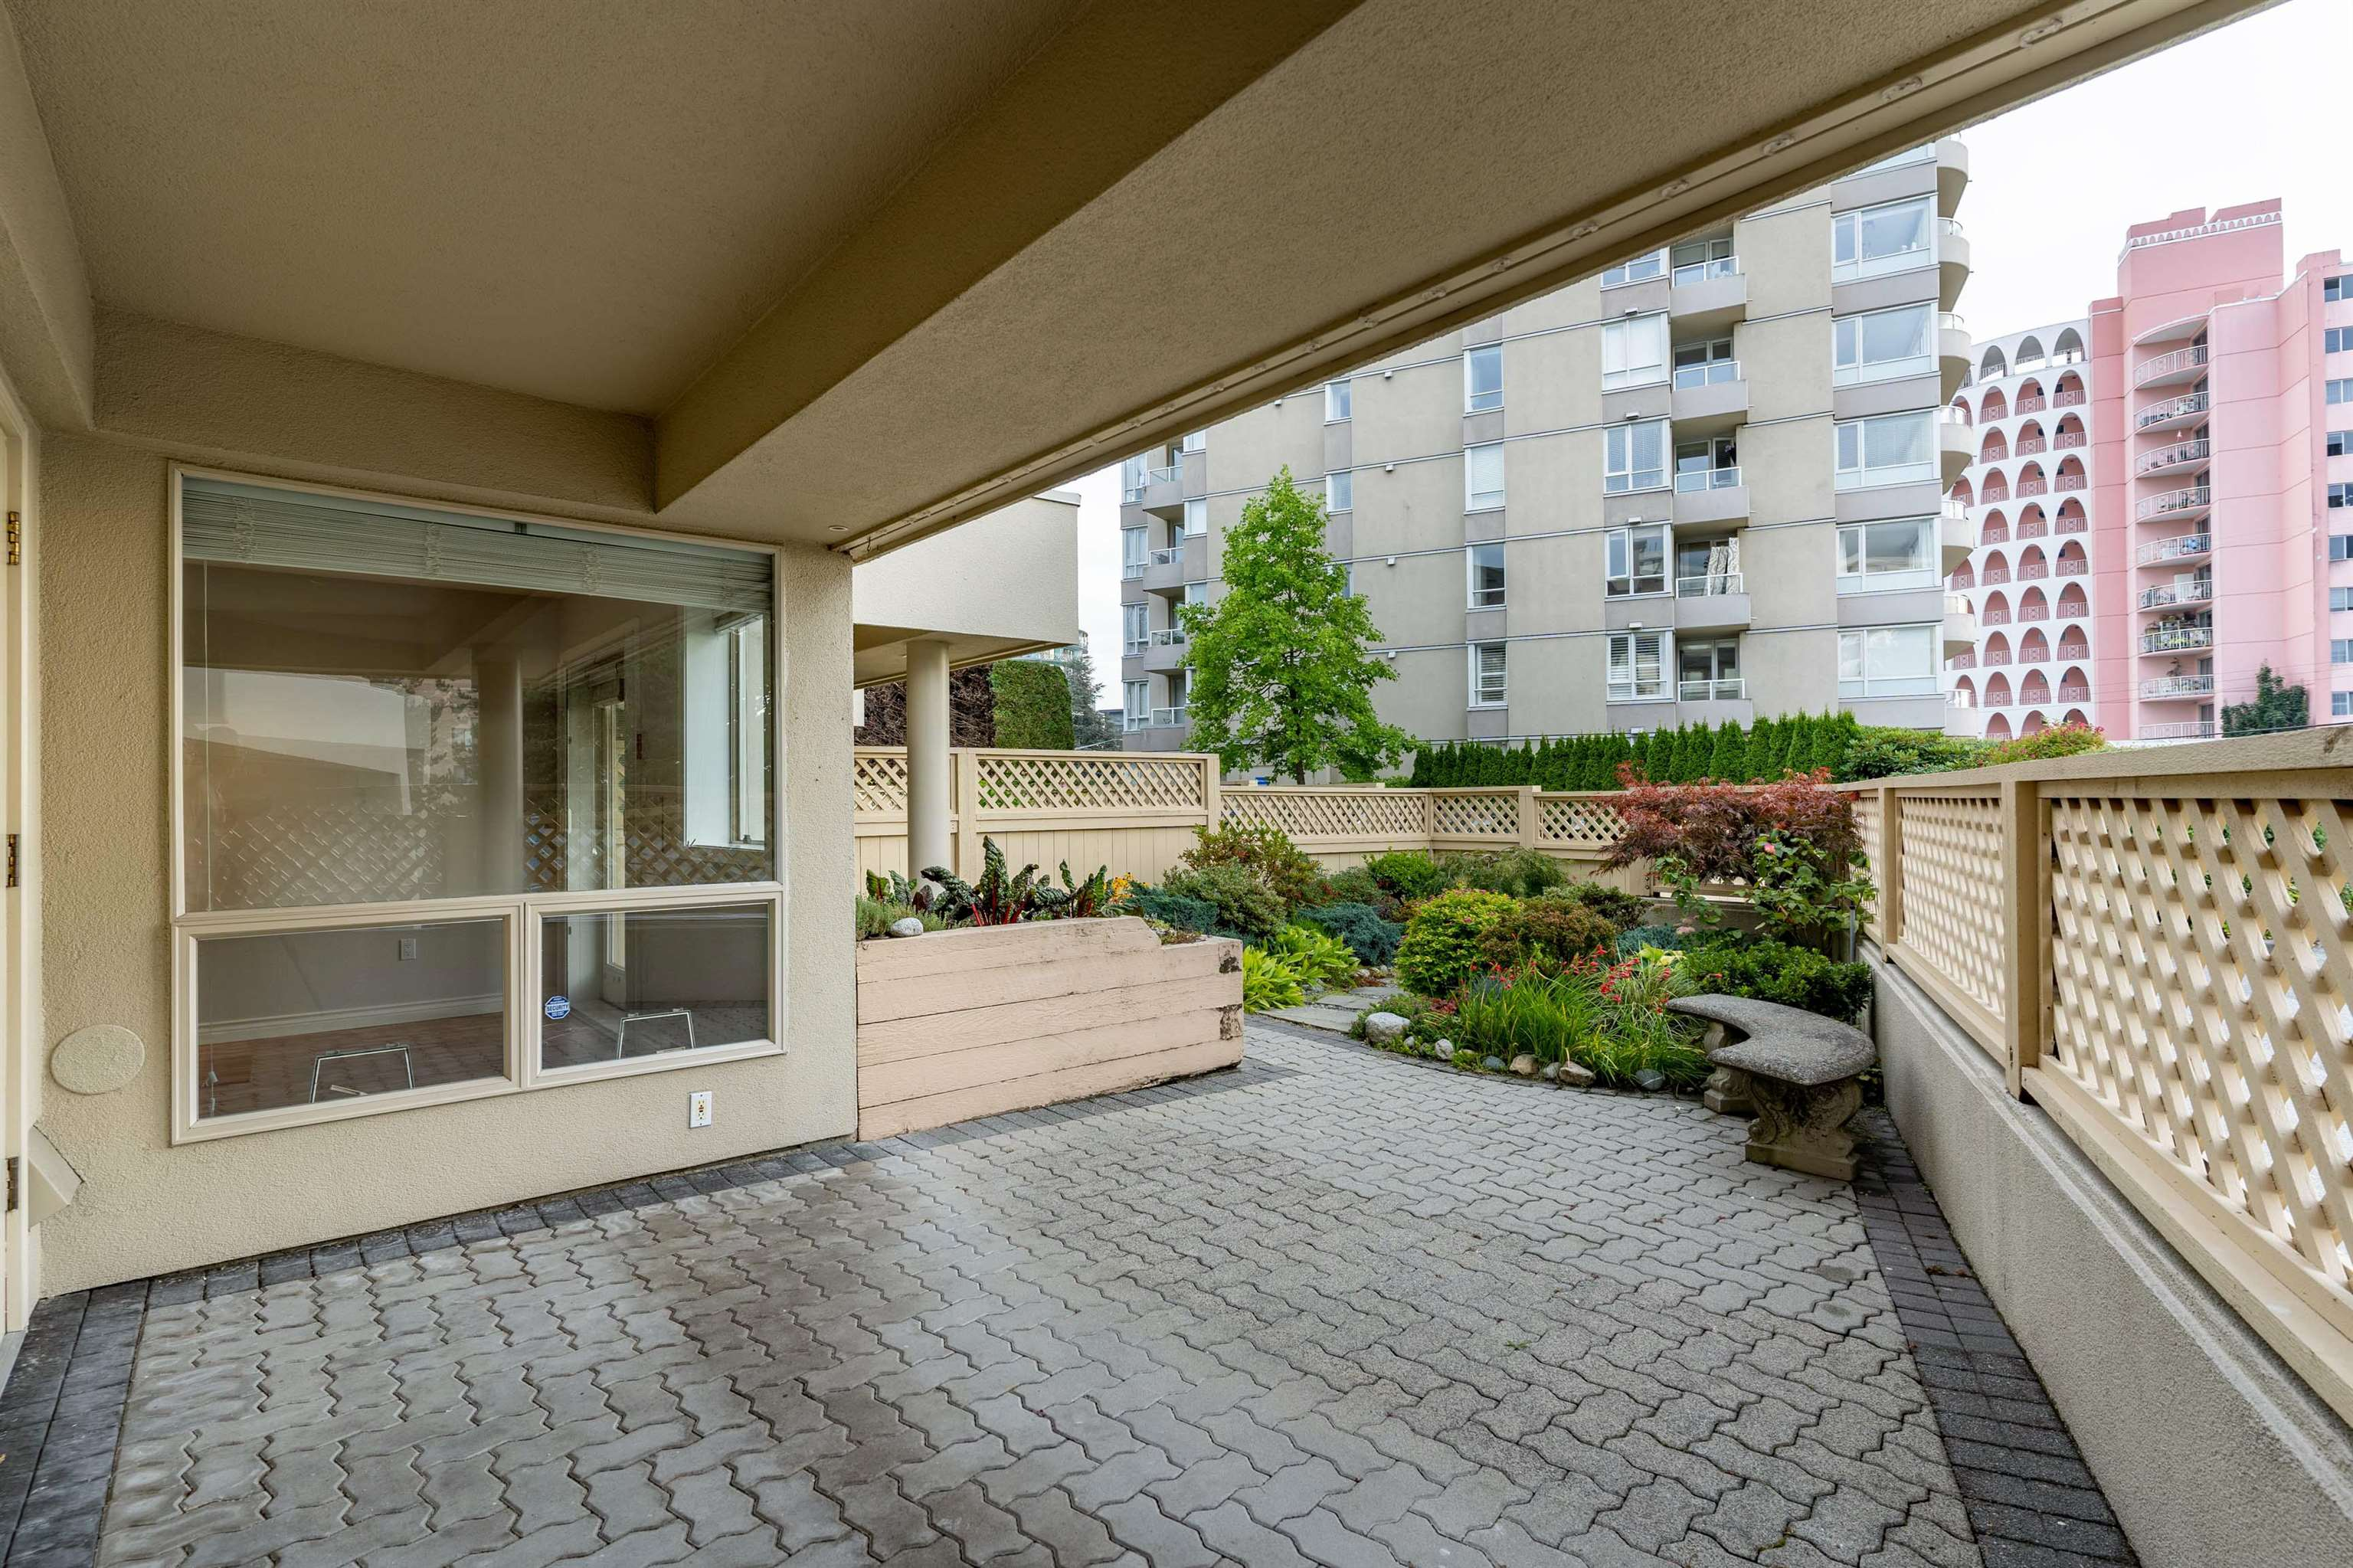 B1 2202 MARINE DRIVE - Dundarave Apartment/Condo for sale, 1 Bedroom (R2616441) - #6